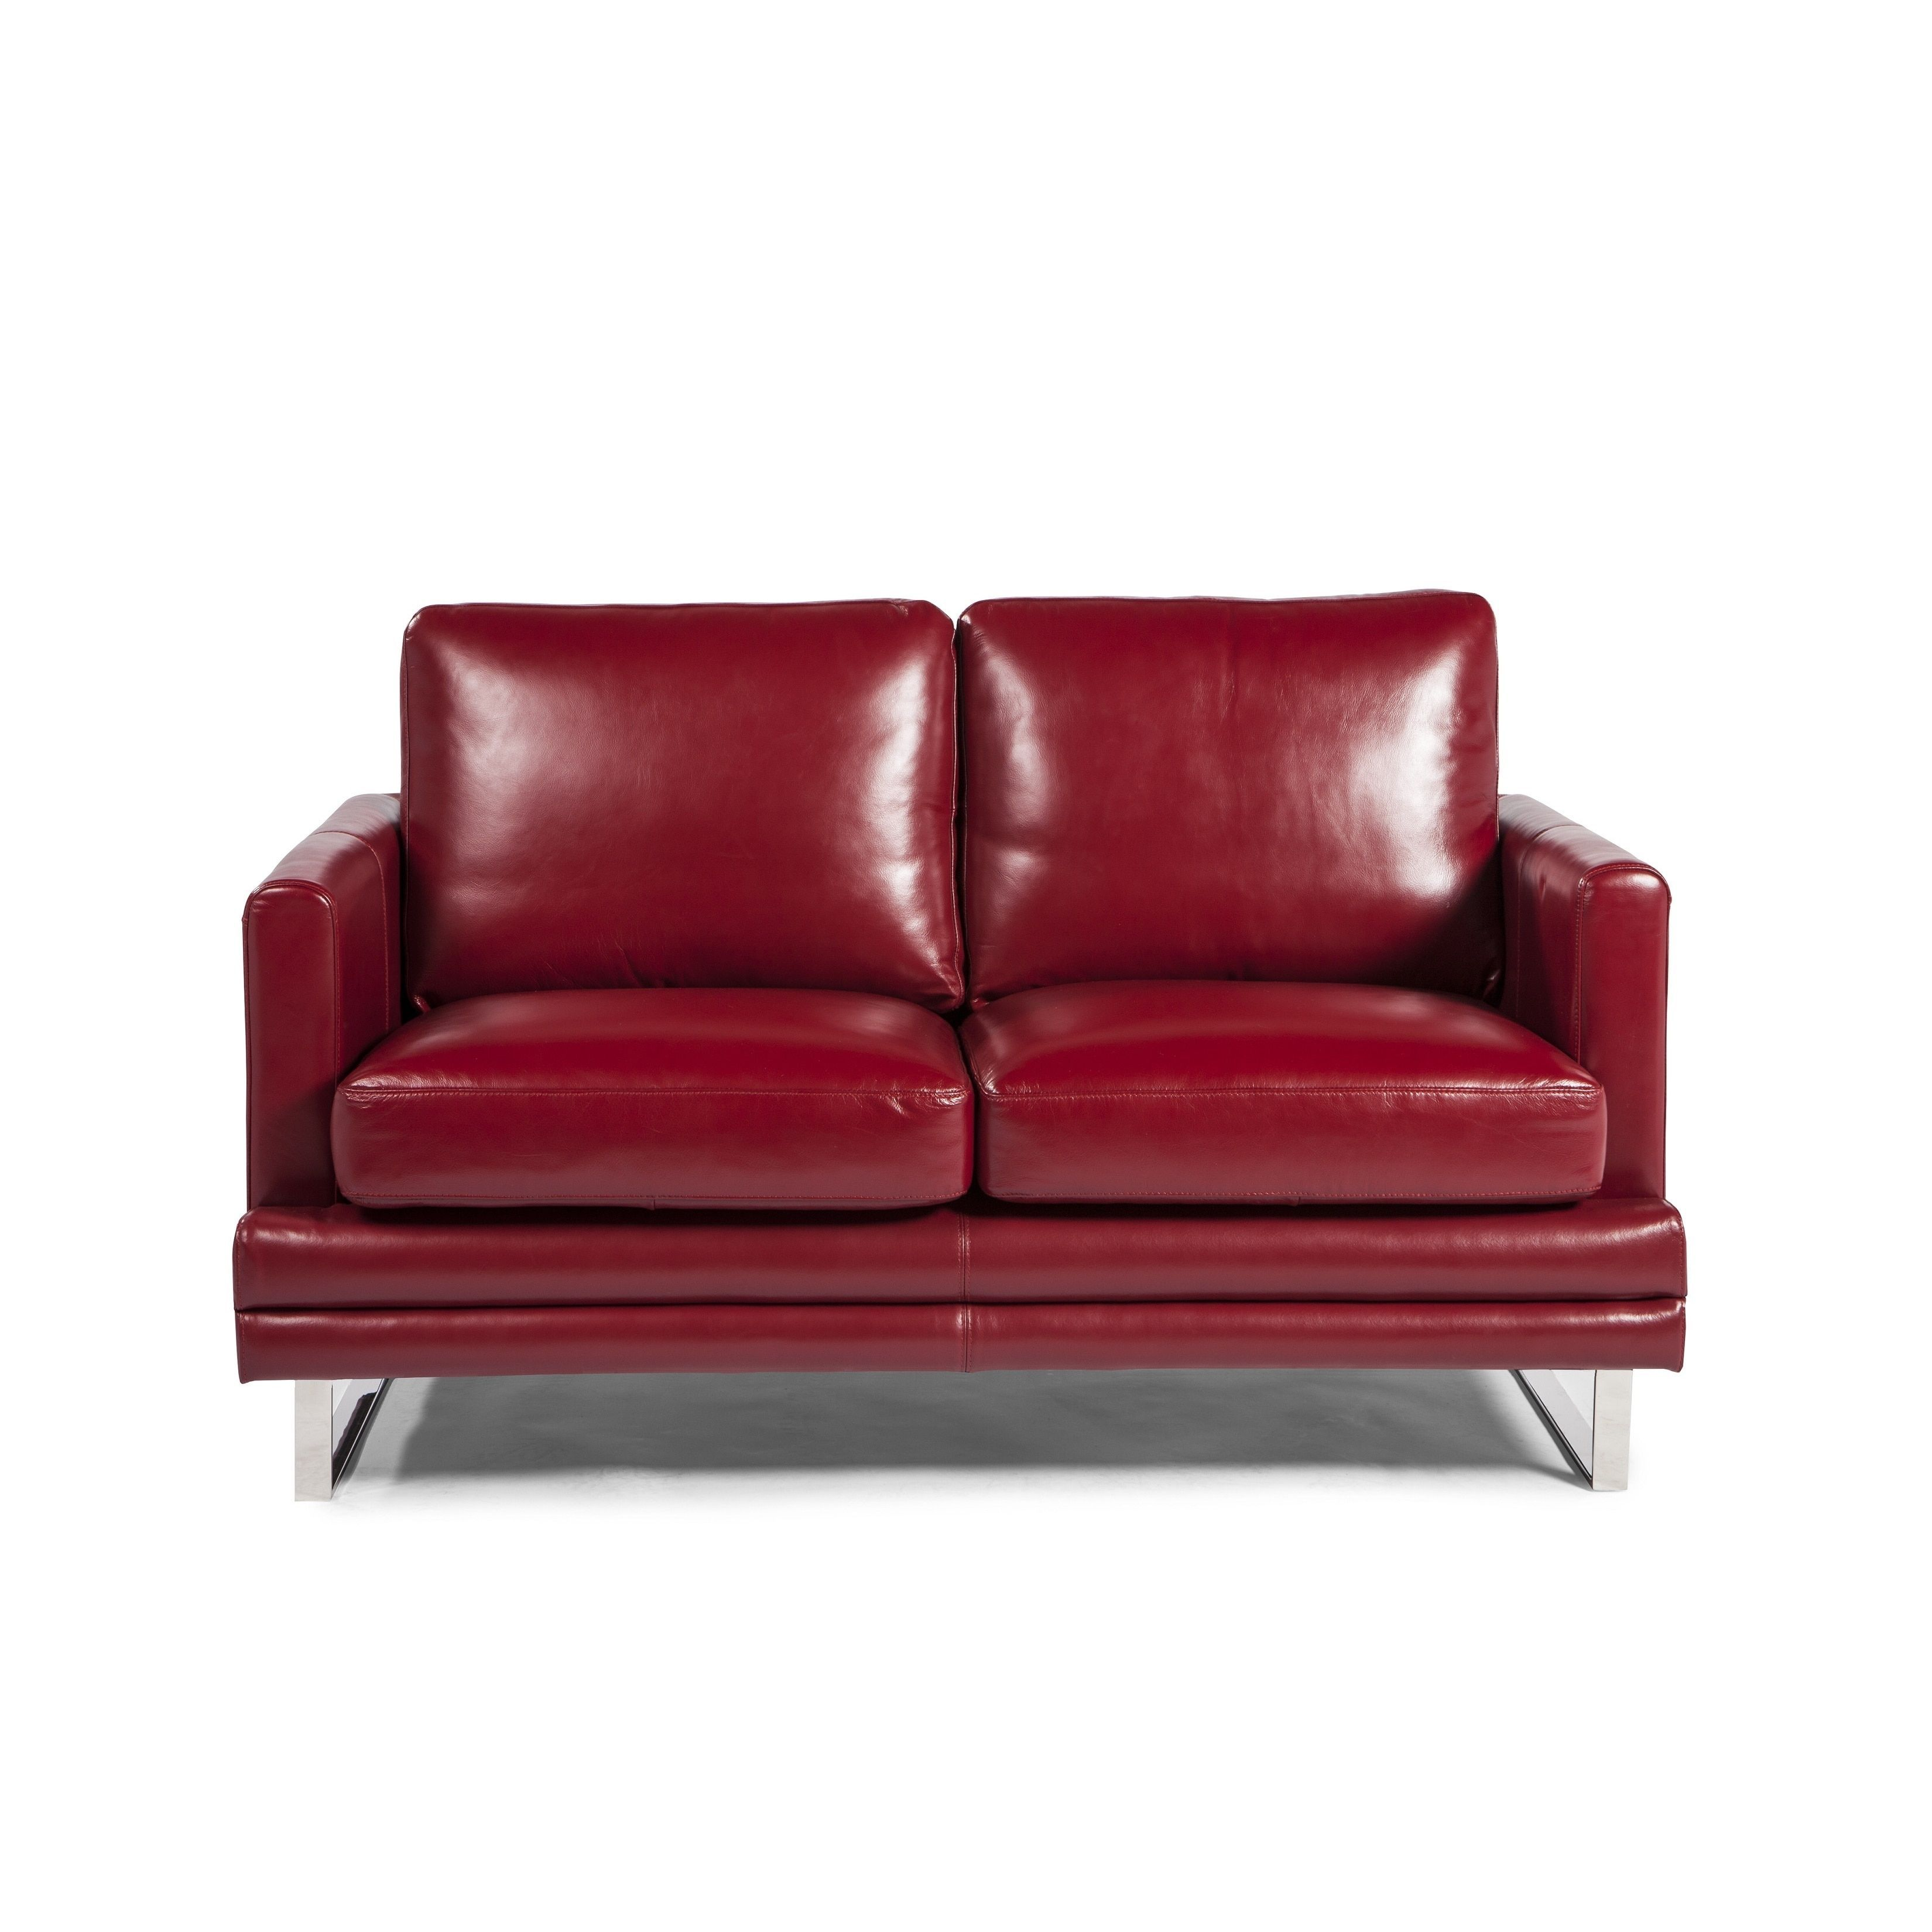 Super Melbourne Collection Red Leather Loveseat By Lazzaro Leather Gamerscity Chair Design For Home Gamerscityorg